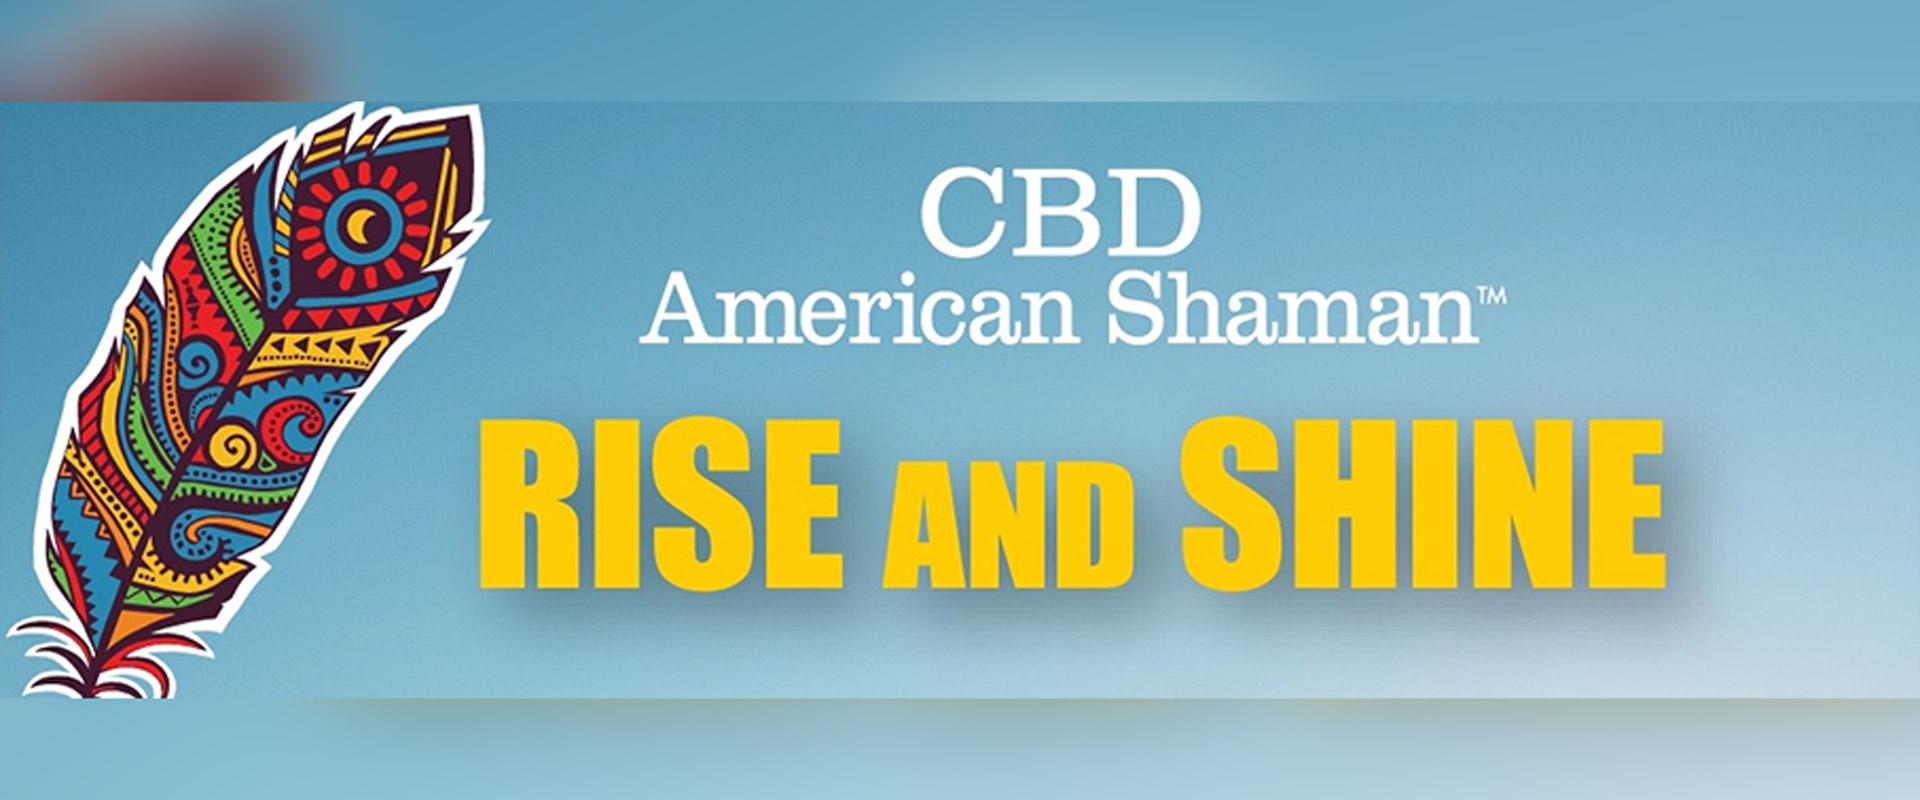 CBD American shaman is the home of products where you don't have to get high to get help